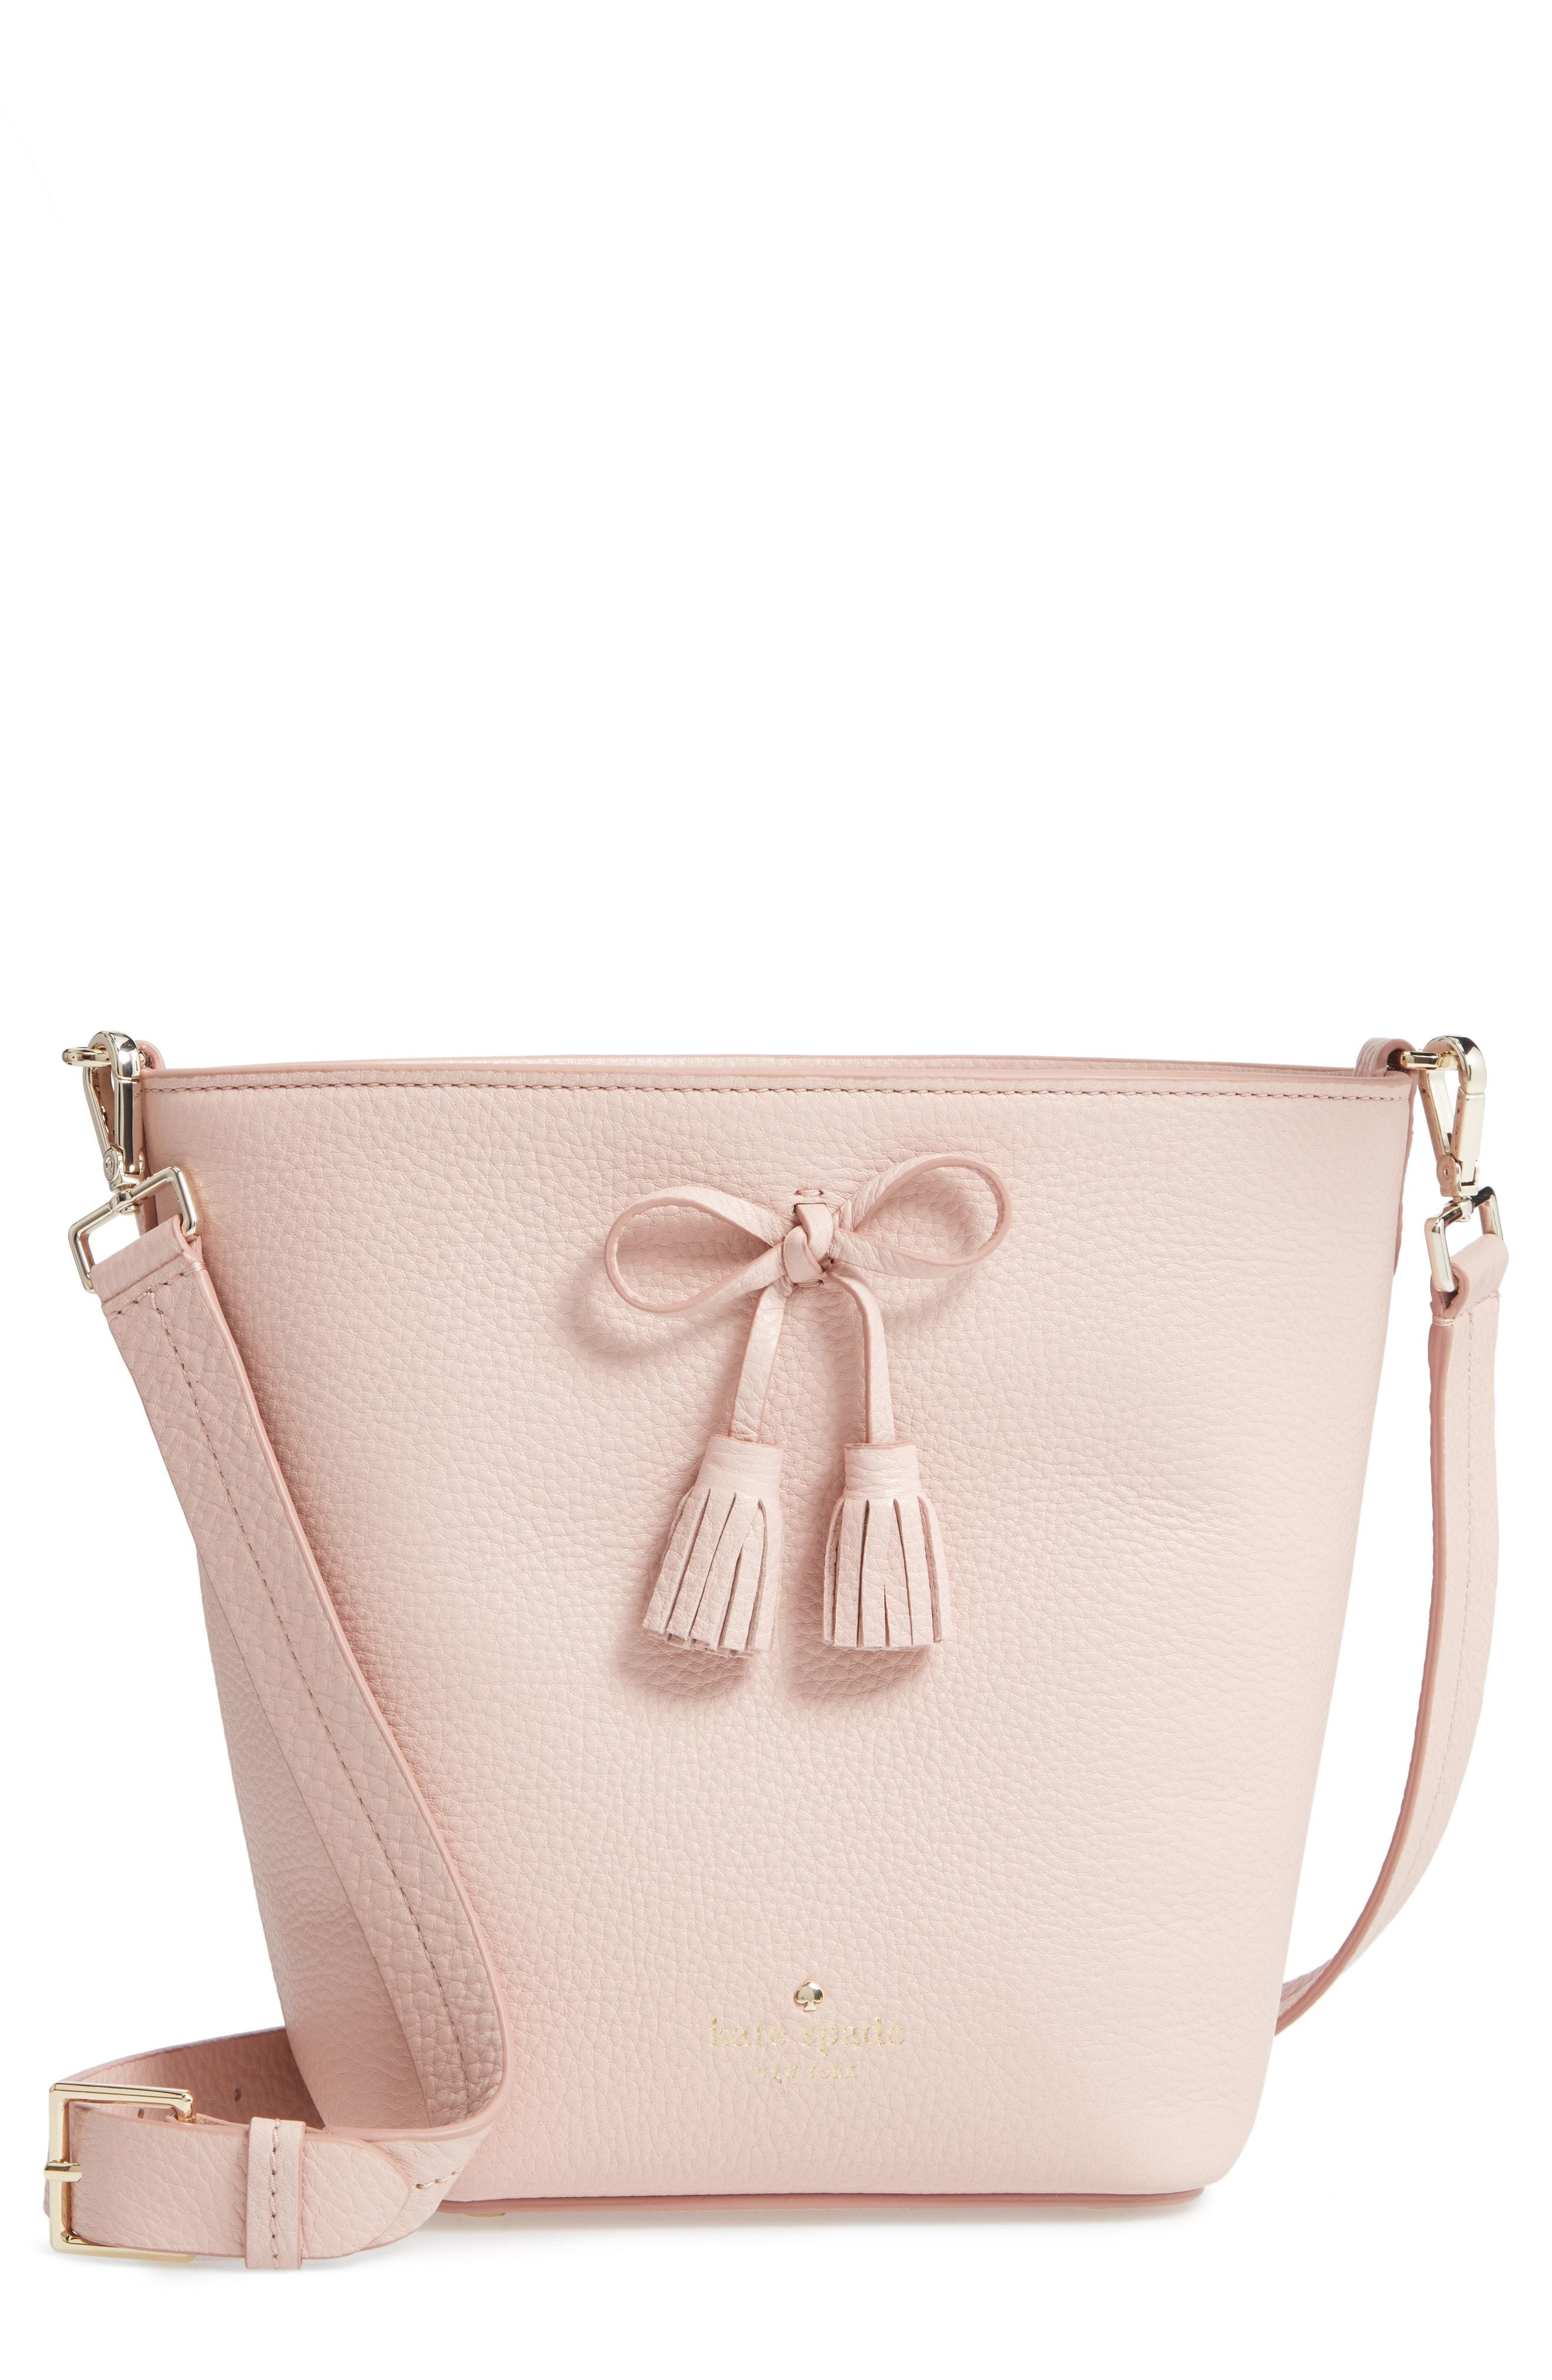 115a8afd4 ... Nordstrom › kate spade new york › Pink Leather Bucket Bags kate spade  new york Hayes Street Vanessa Leather Shoulder Bag